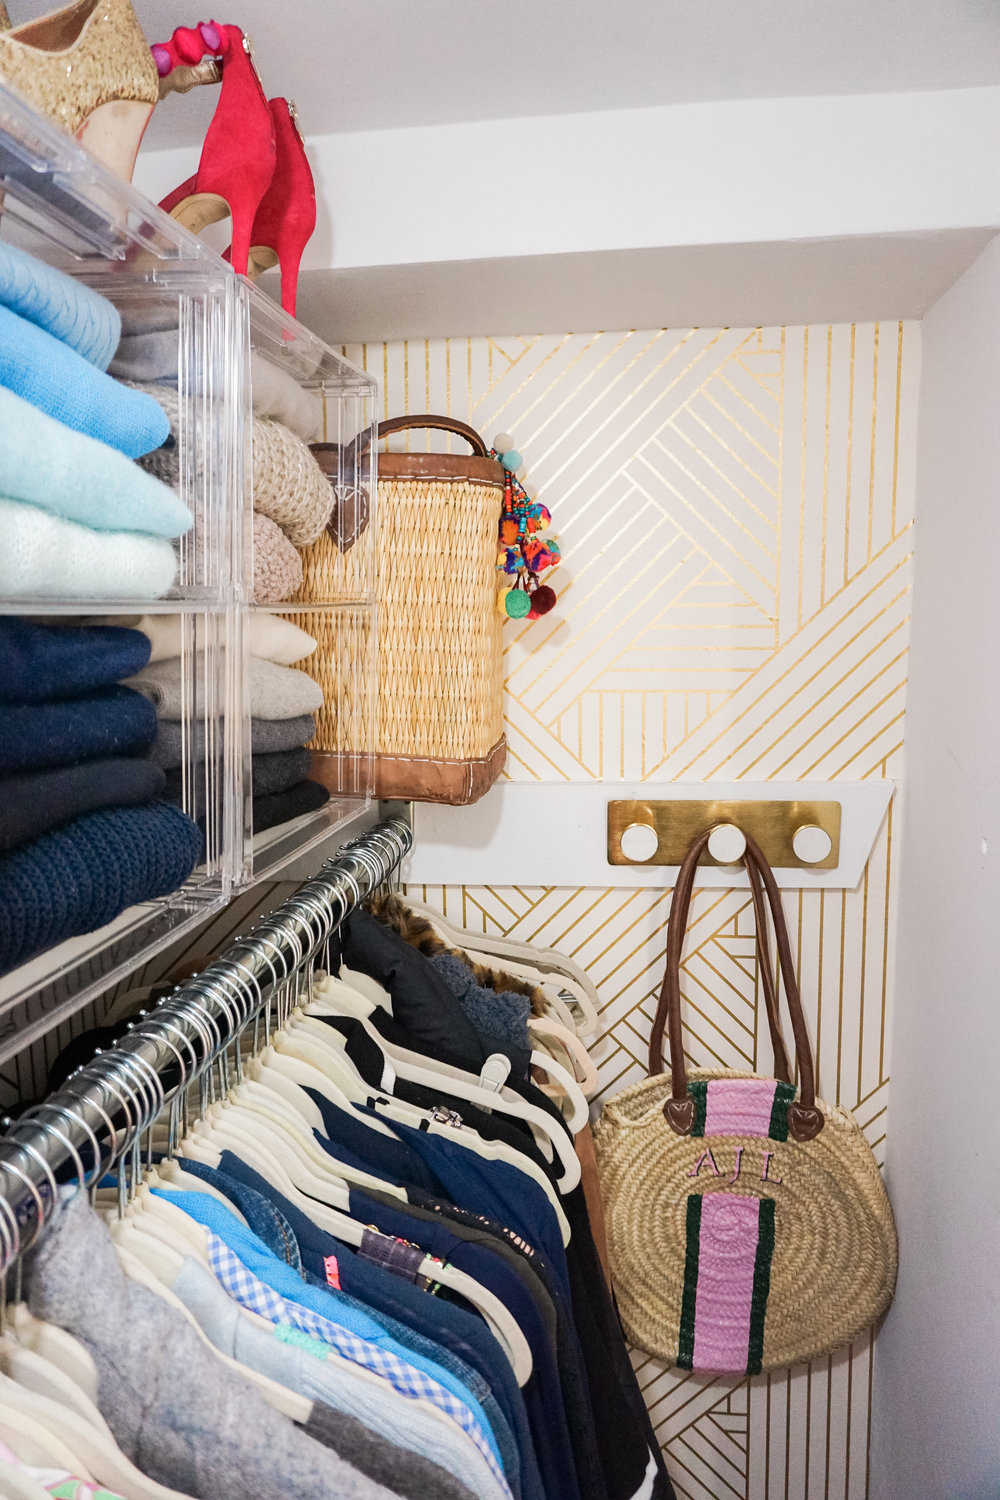 House of Turk | Closet Organization, Wall Hooks with Wallpaper